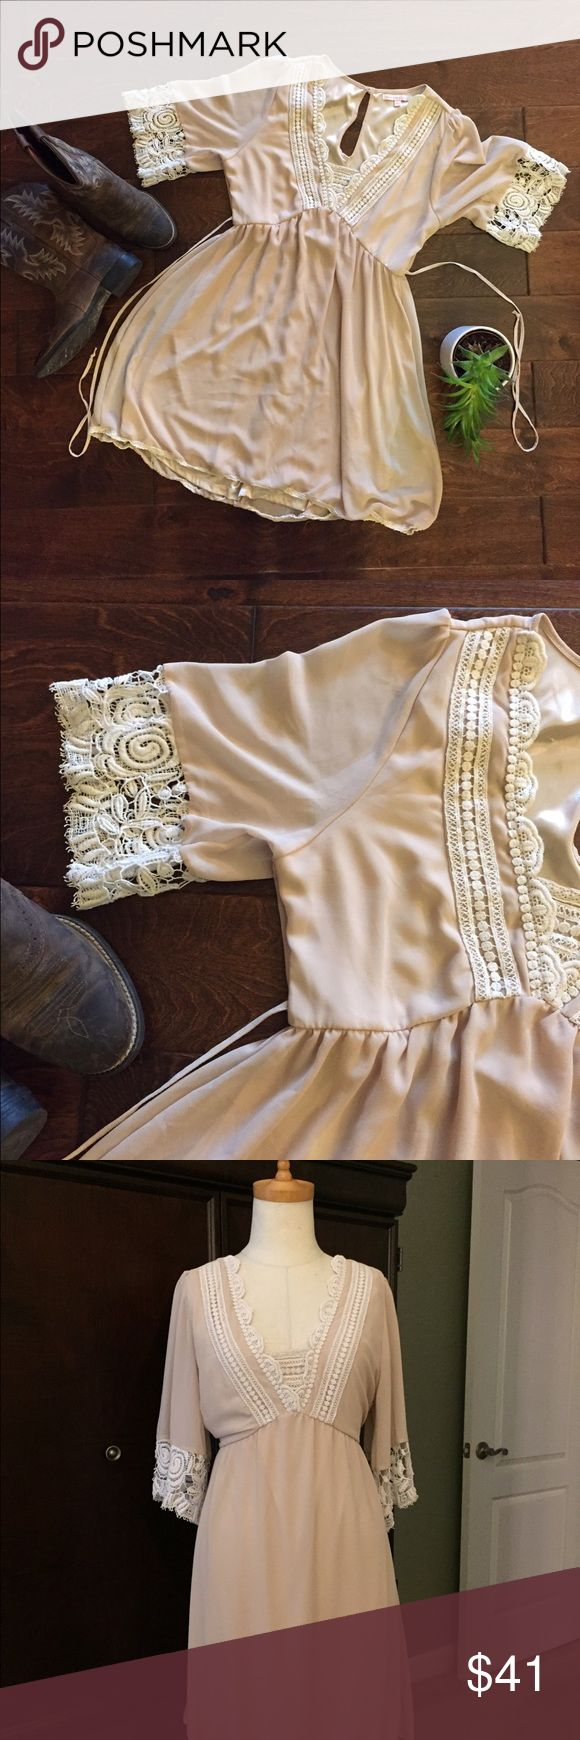 💥 Beige Blush Sheer Baby Doll Dress With Lace 💥 NWOT Adorable sheer baby doll dress with lace trim. Size large juniors. Adorable with boots. I bought this dress to wear to a Kenny Chesney concert but it is too small for me. The color is a dark beige but kind of has a blush tone to it. Full satin slip. Ties in the back. Thin lace hem. Dresses